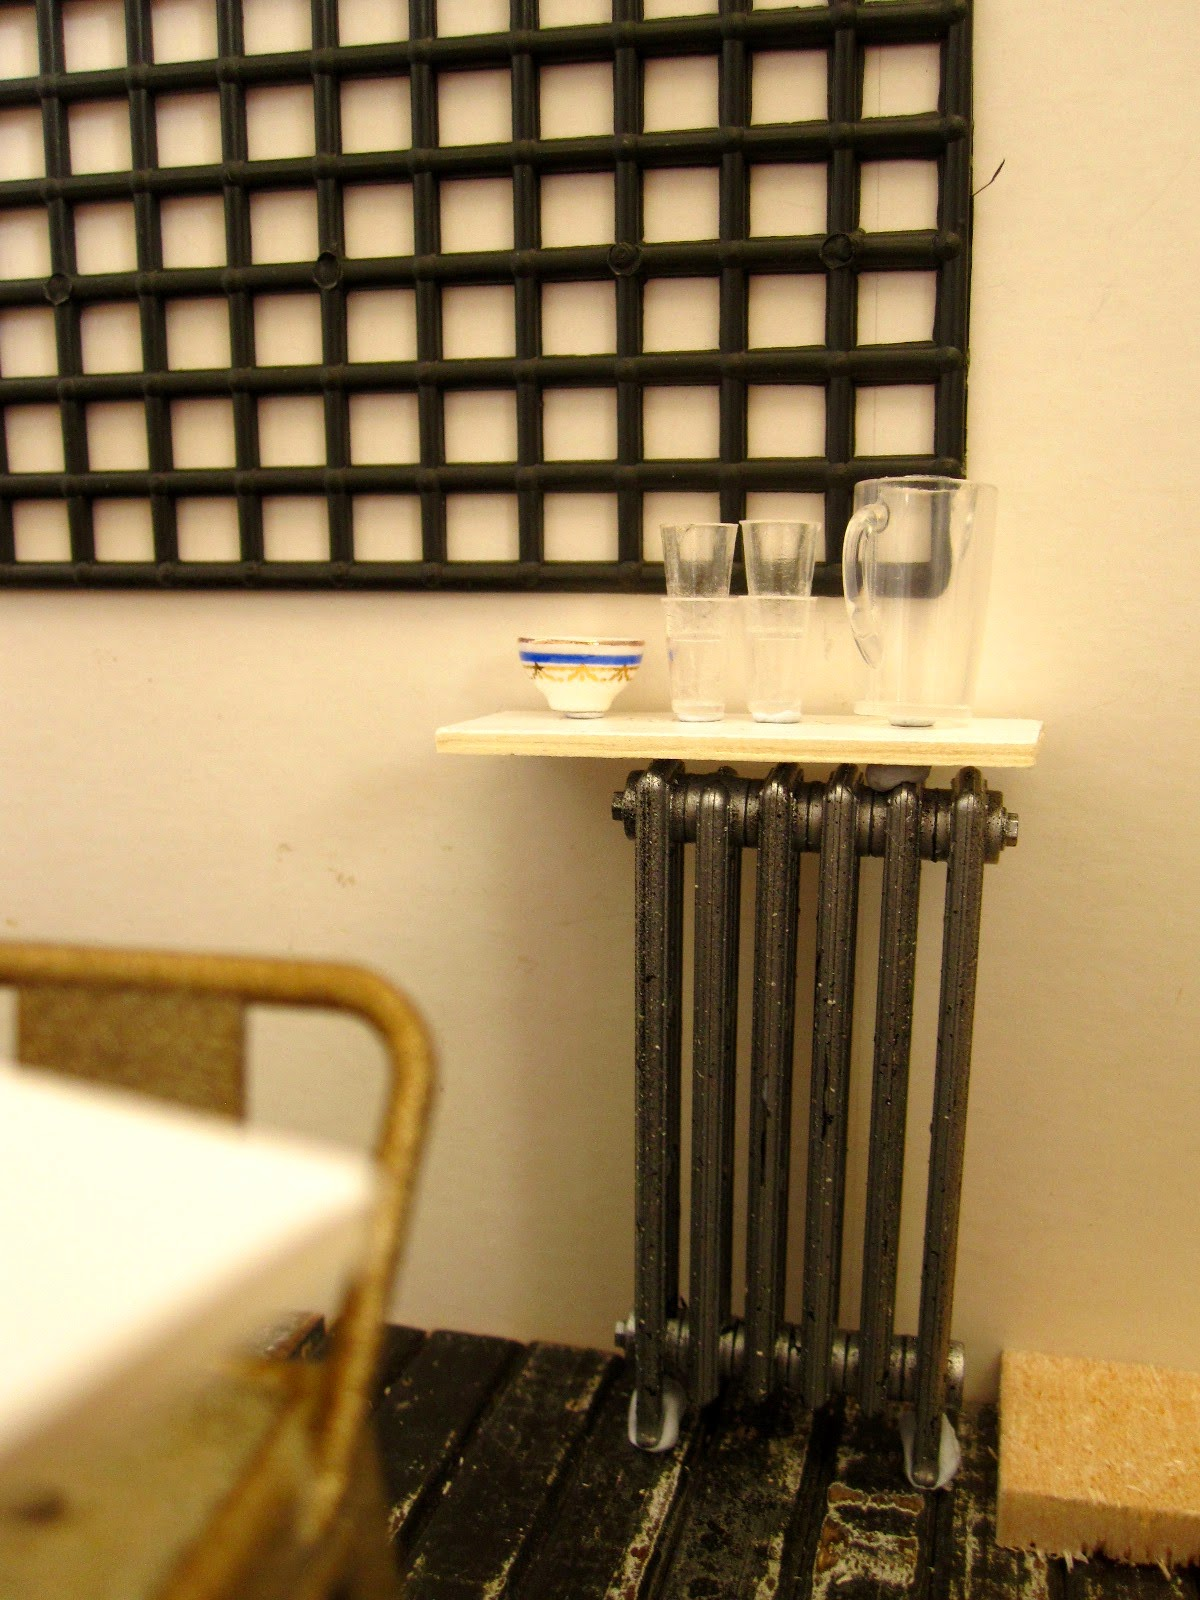 Modern dolls' house miniature half-built cafe, showing a radiator with a shelf on it, holding a water jug, glasses and a sugar bowl.